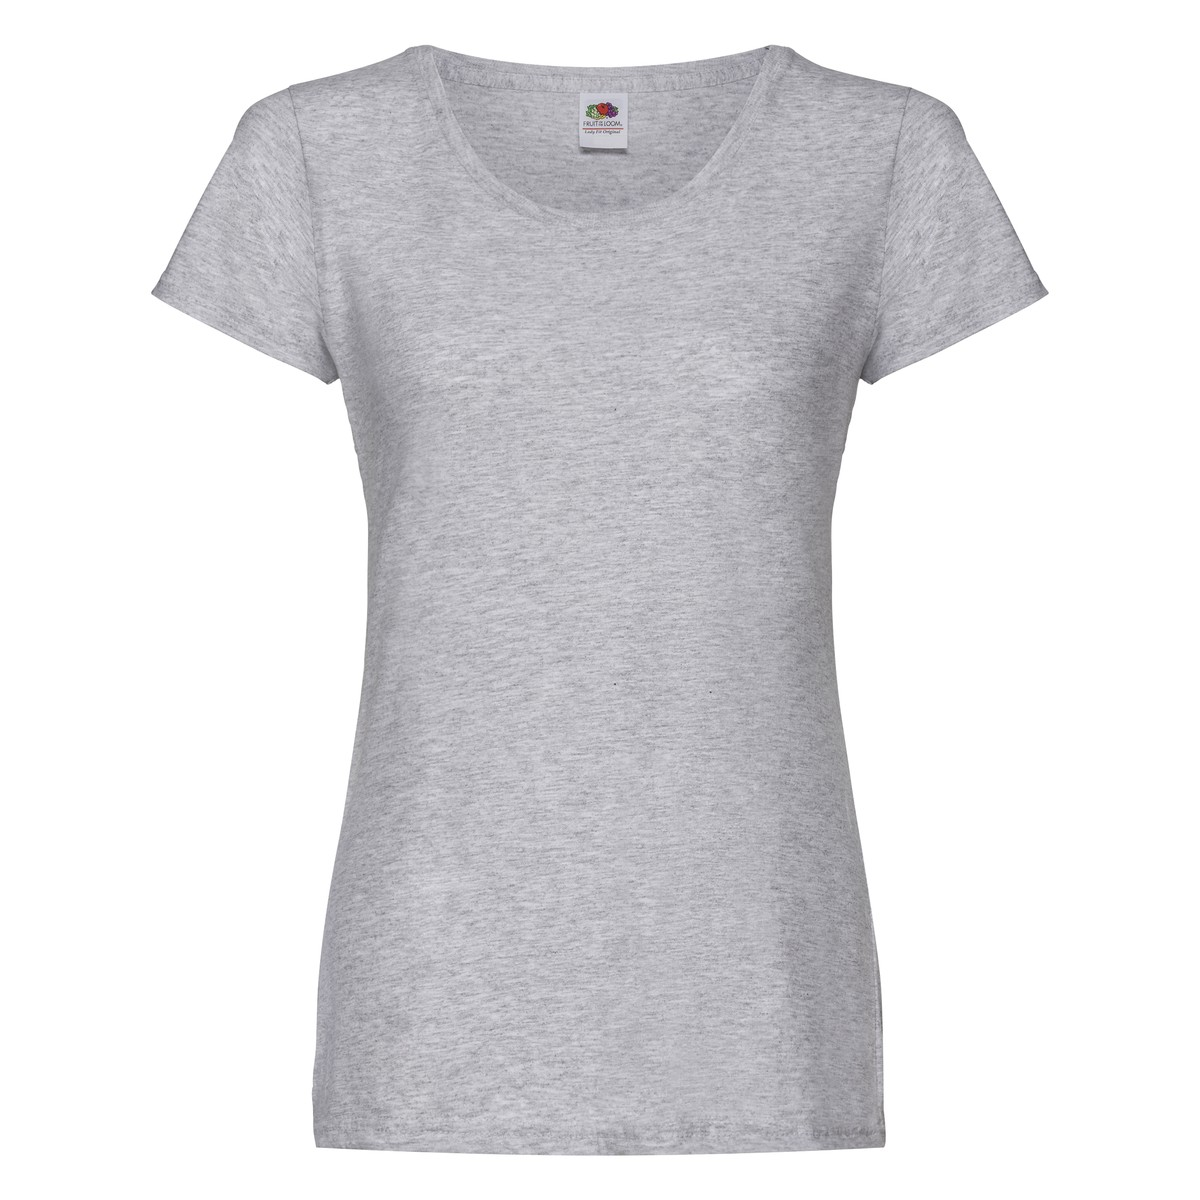 94 - HEATHER GREY